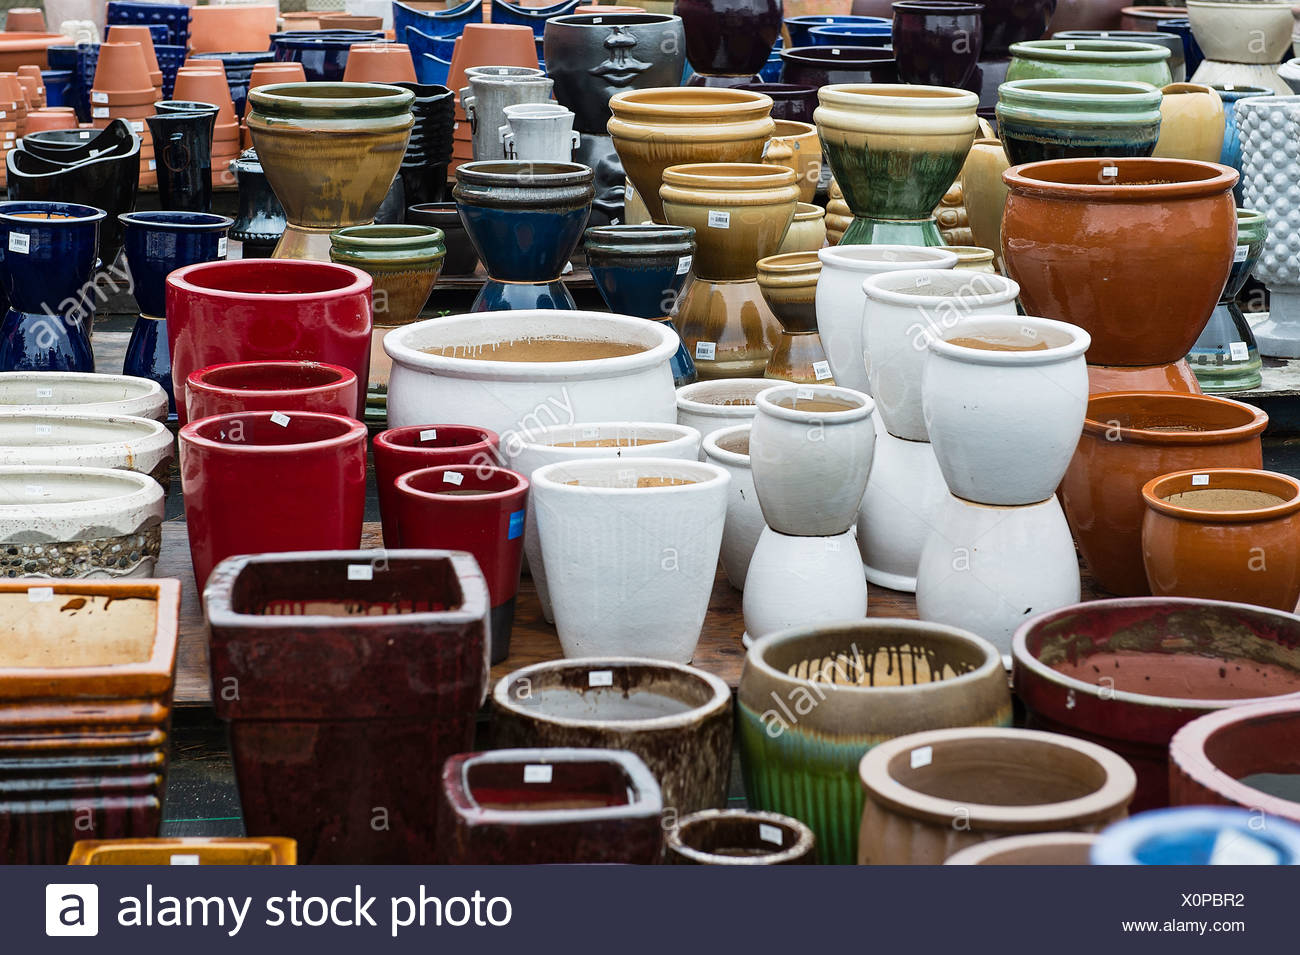 Selection Of Decorative Containers At A Garden Center.   Stock Image